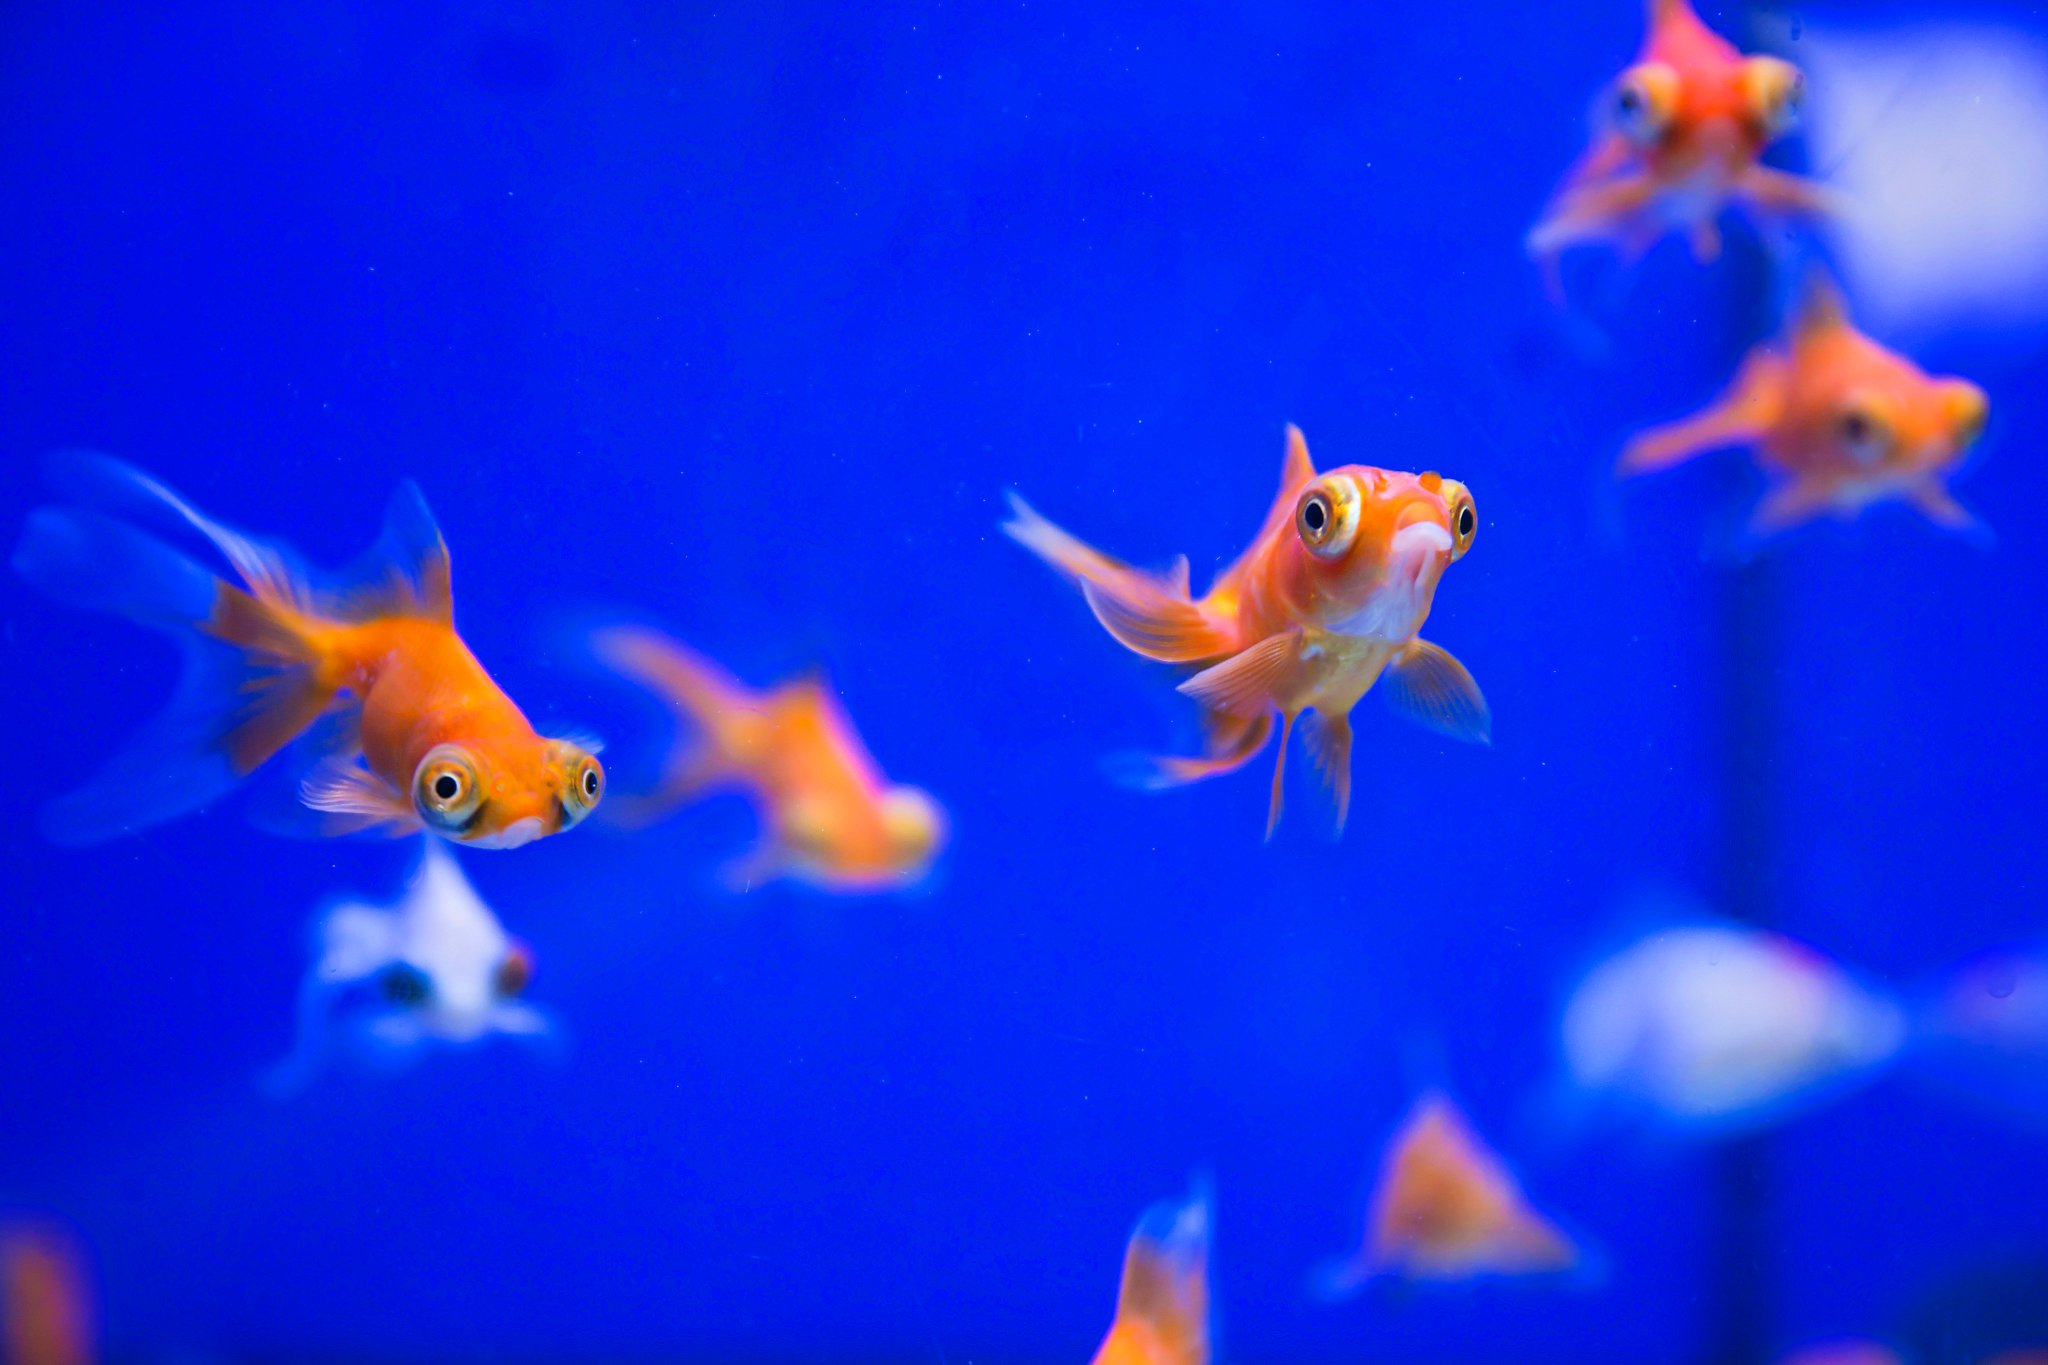 Pets At Home Newport On Twitter Time To Add To Your Tank Stock We Have A Great Range Of Cold Water And Tropical Fish Available In Store Come And See Us And